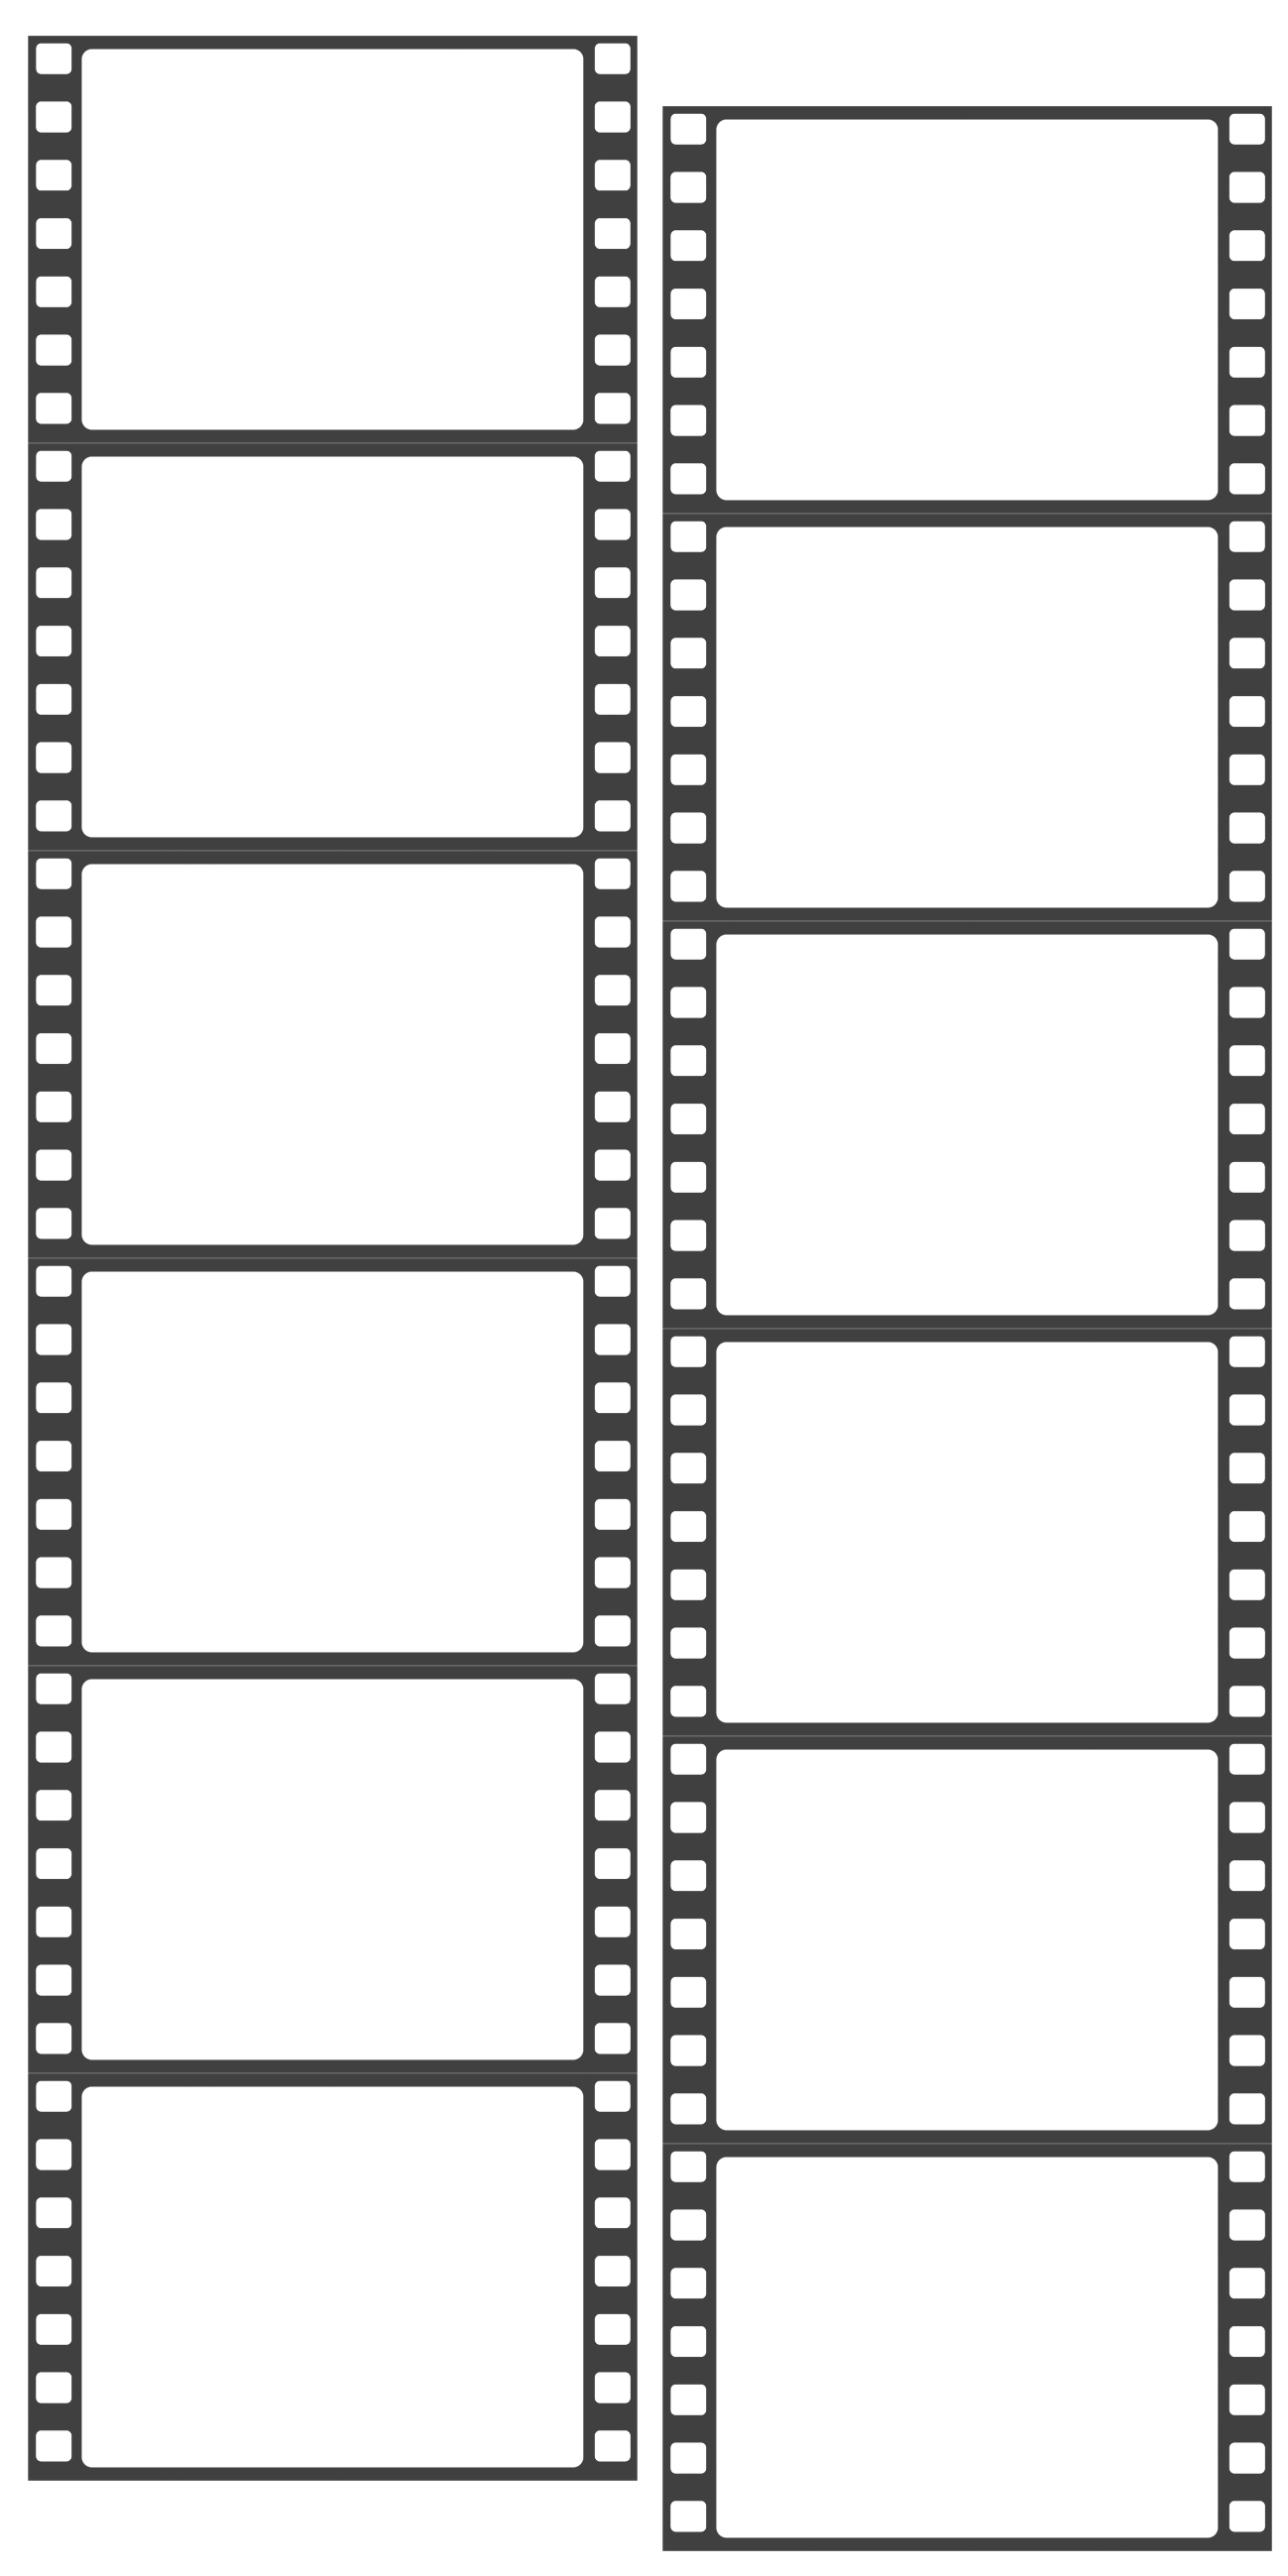 15 film strip template photoshop psd images film strip for Printable film strip template